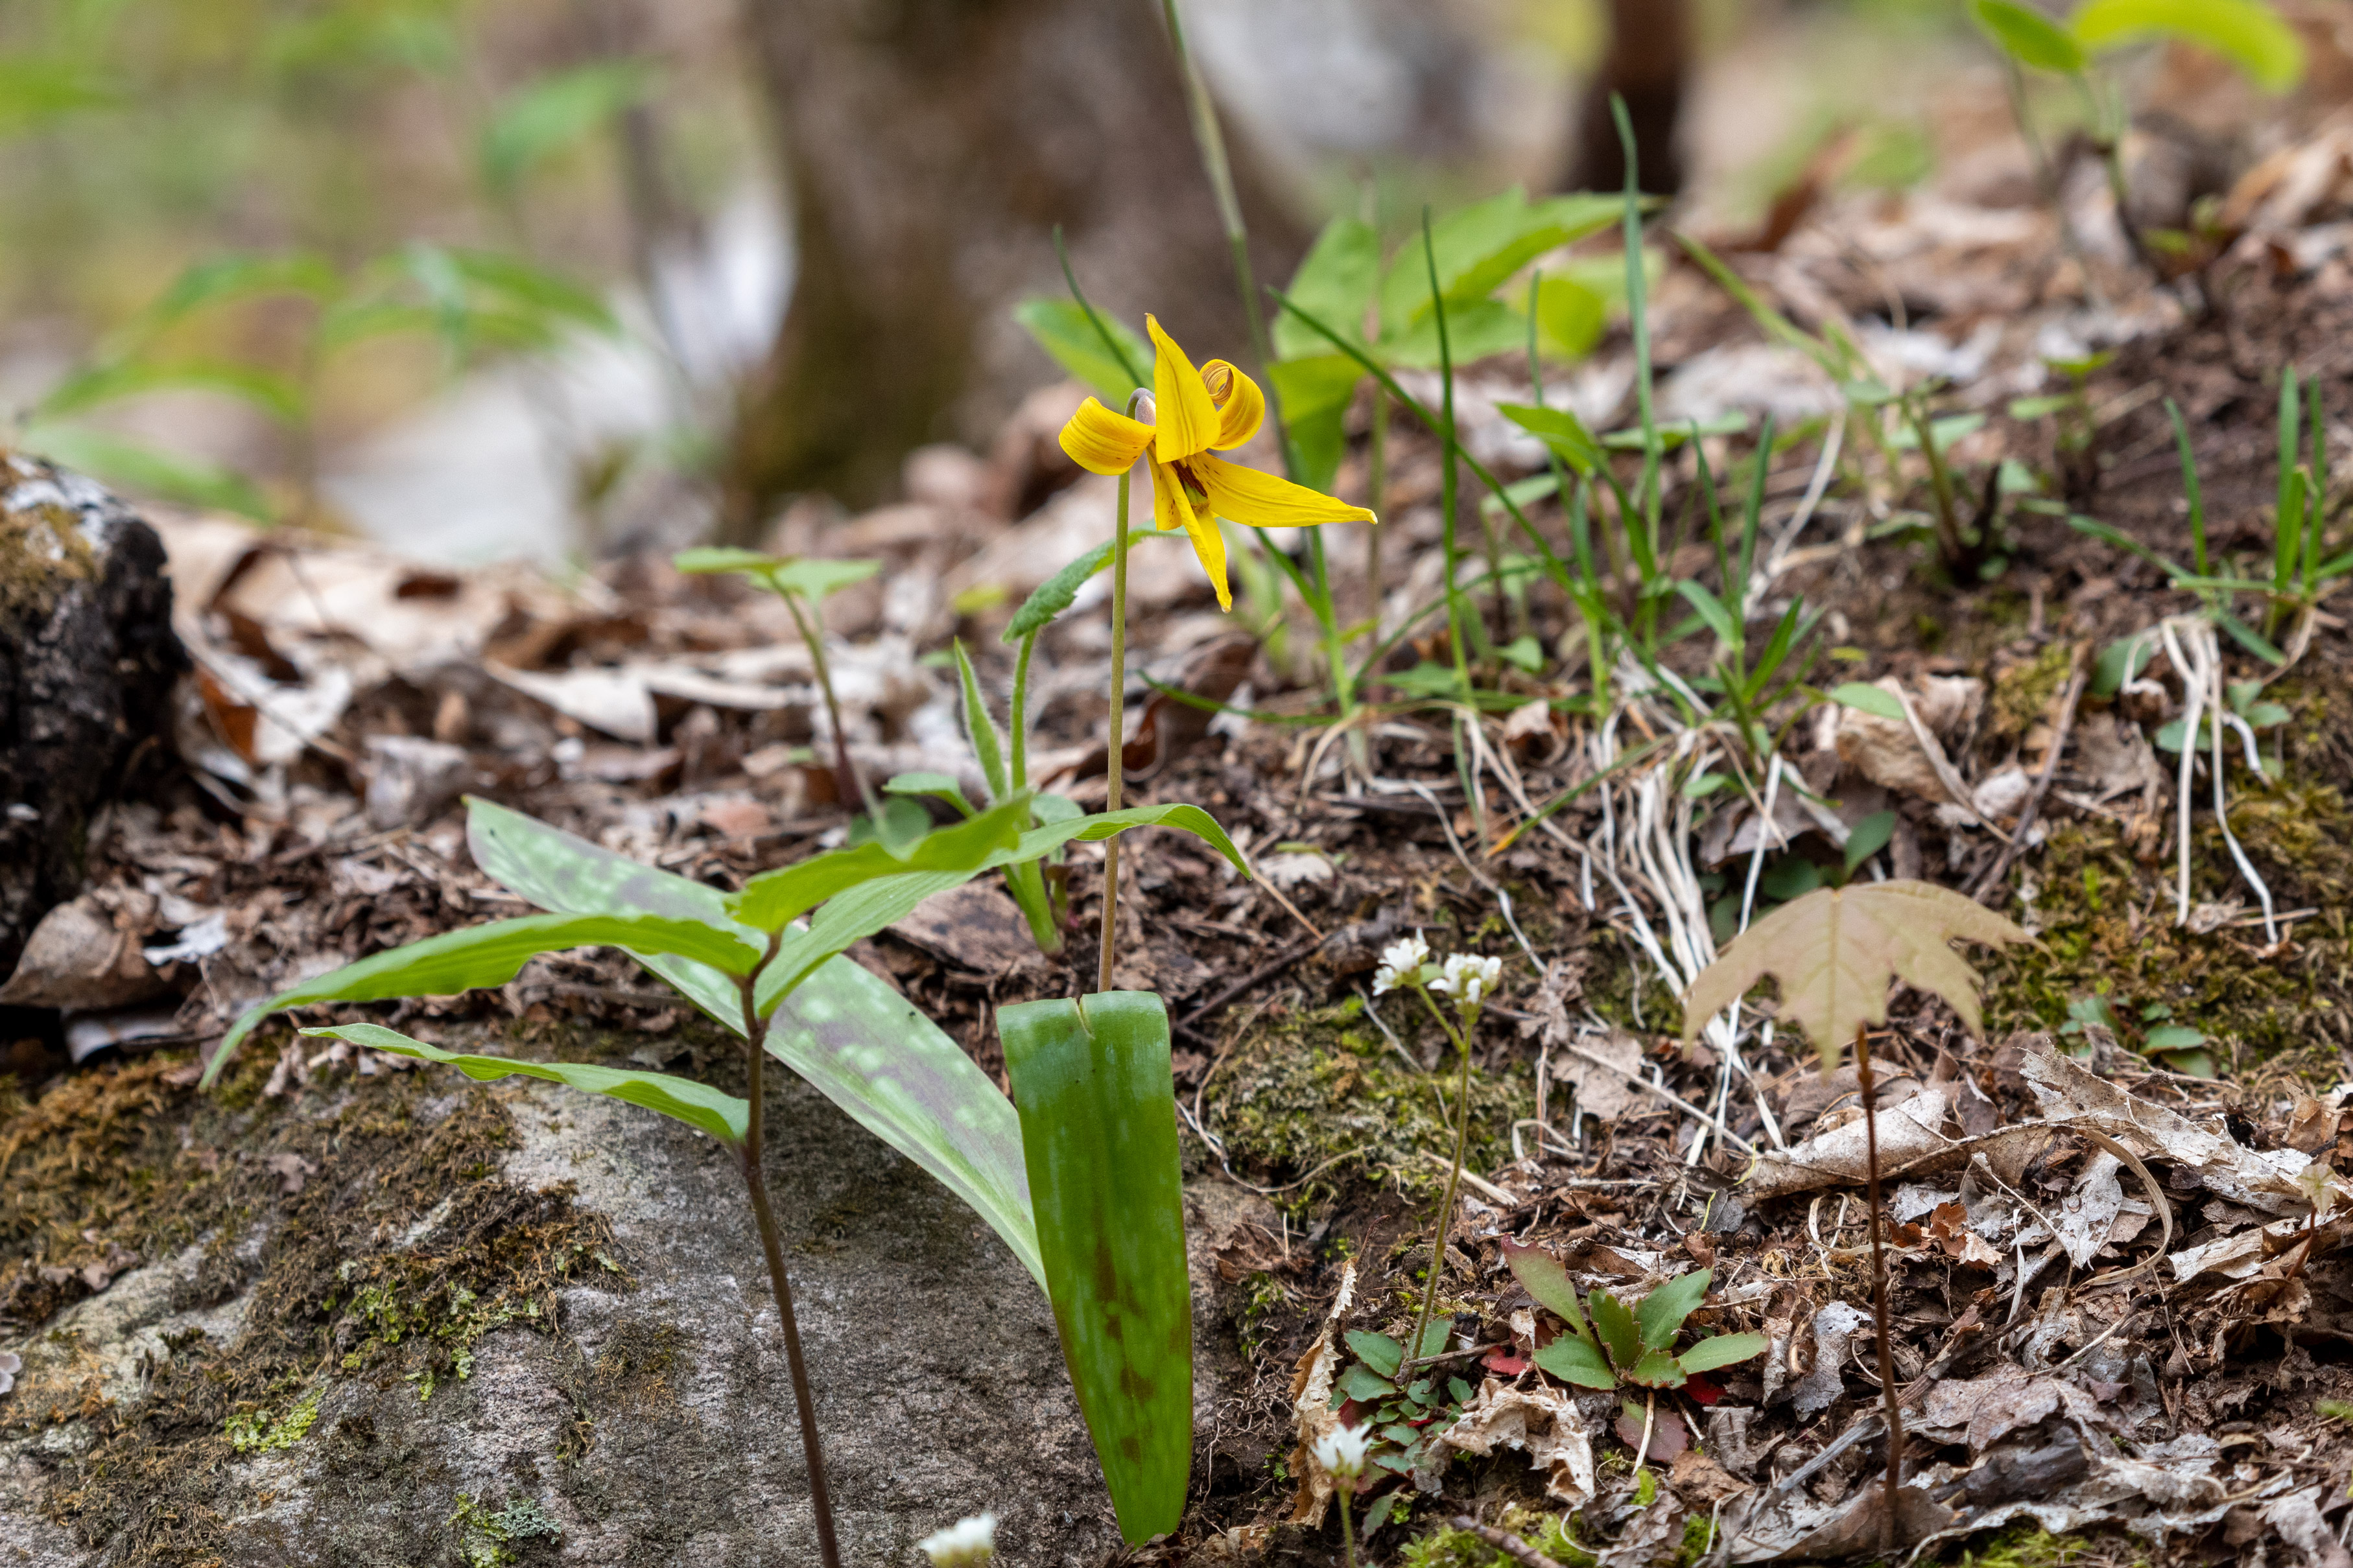 Trout lily on the forest floor